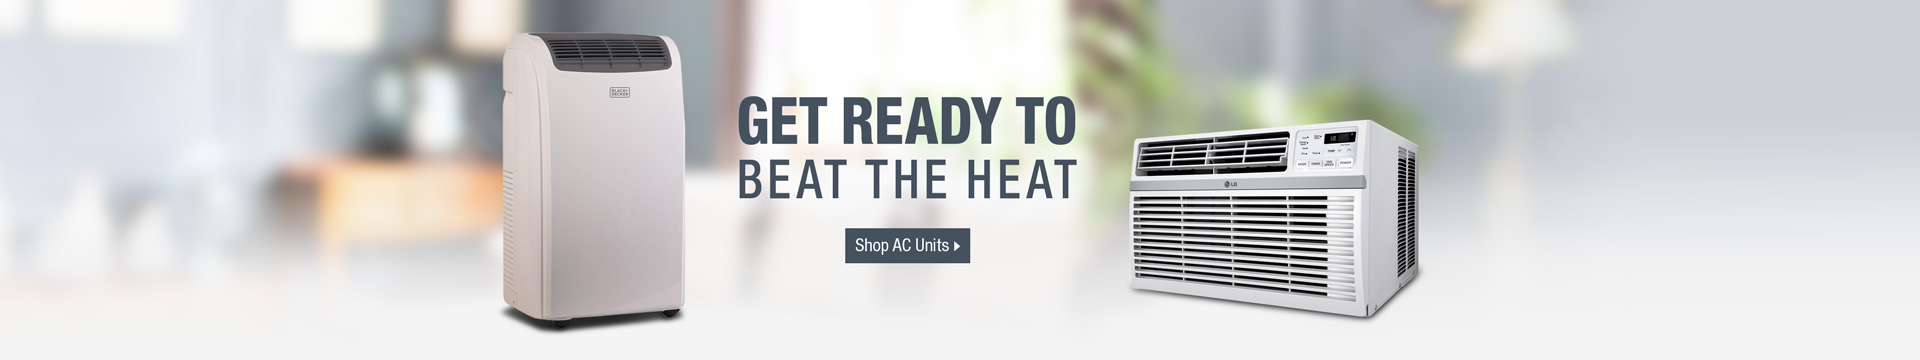 GET READY TO BEAT THE HEAT